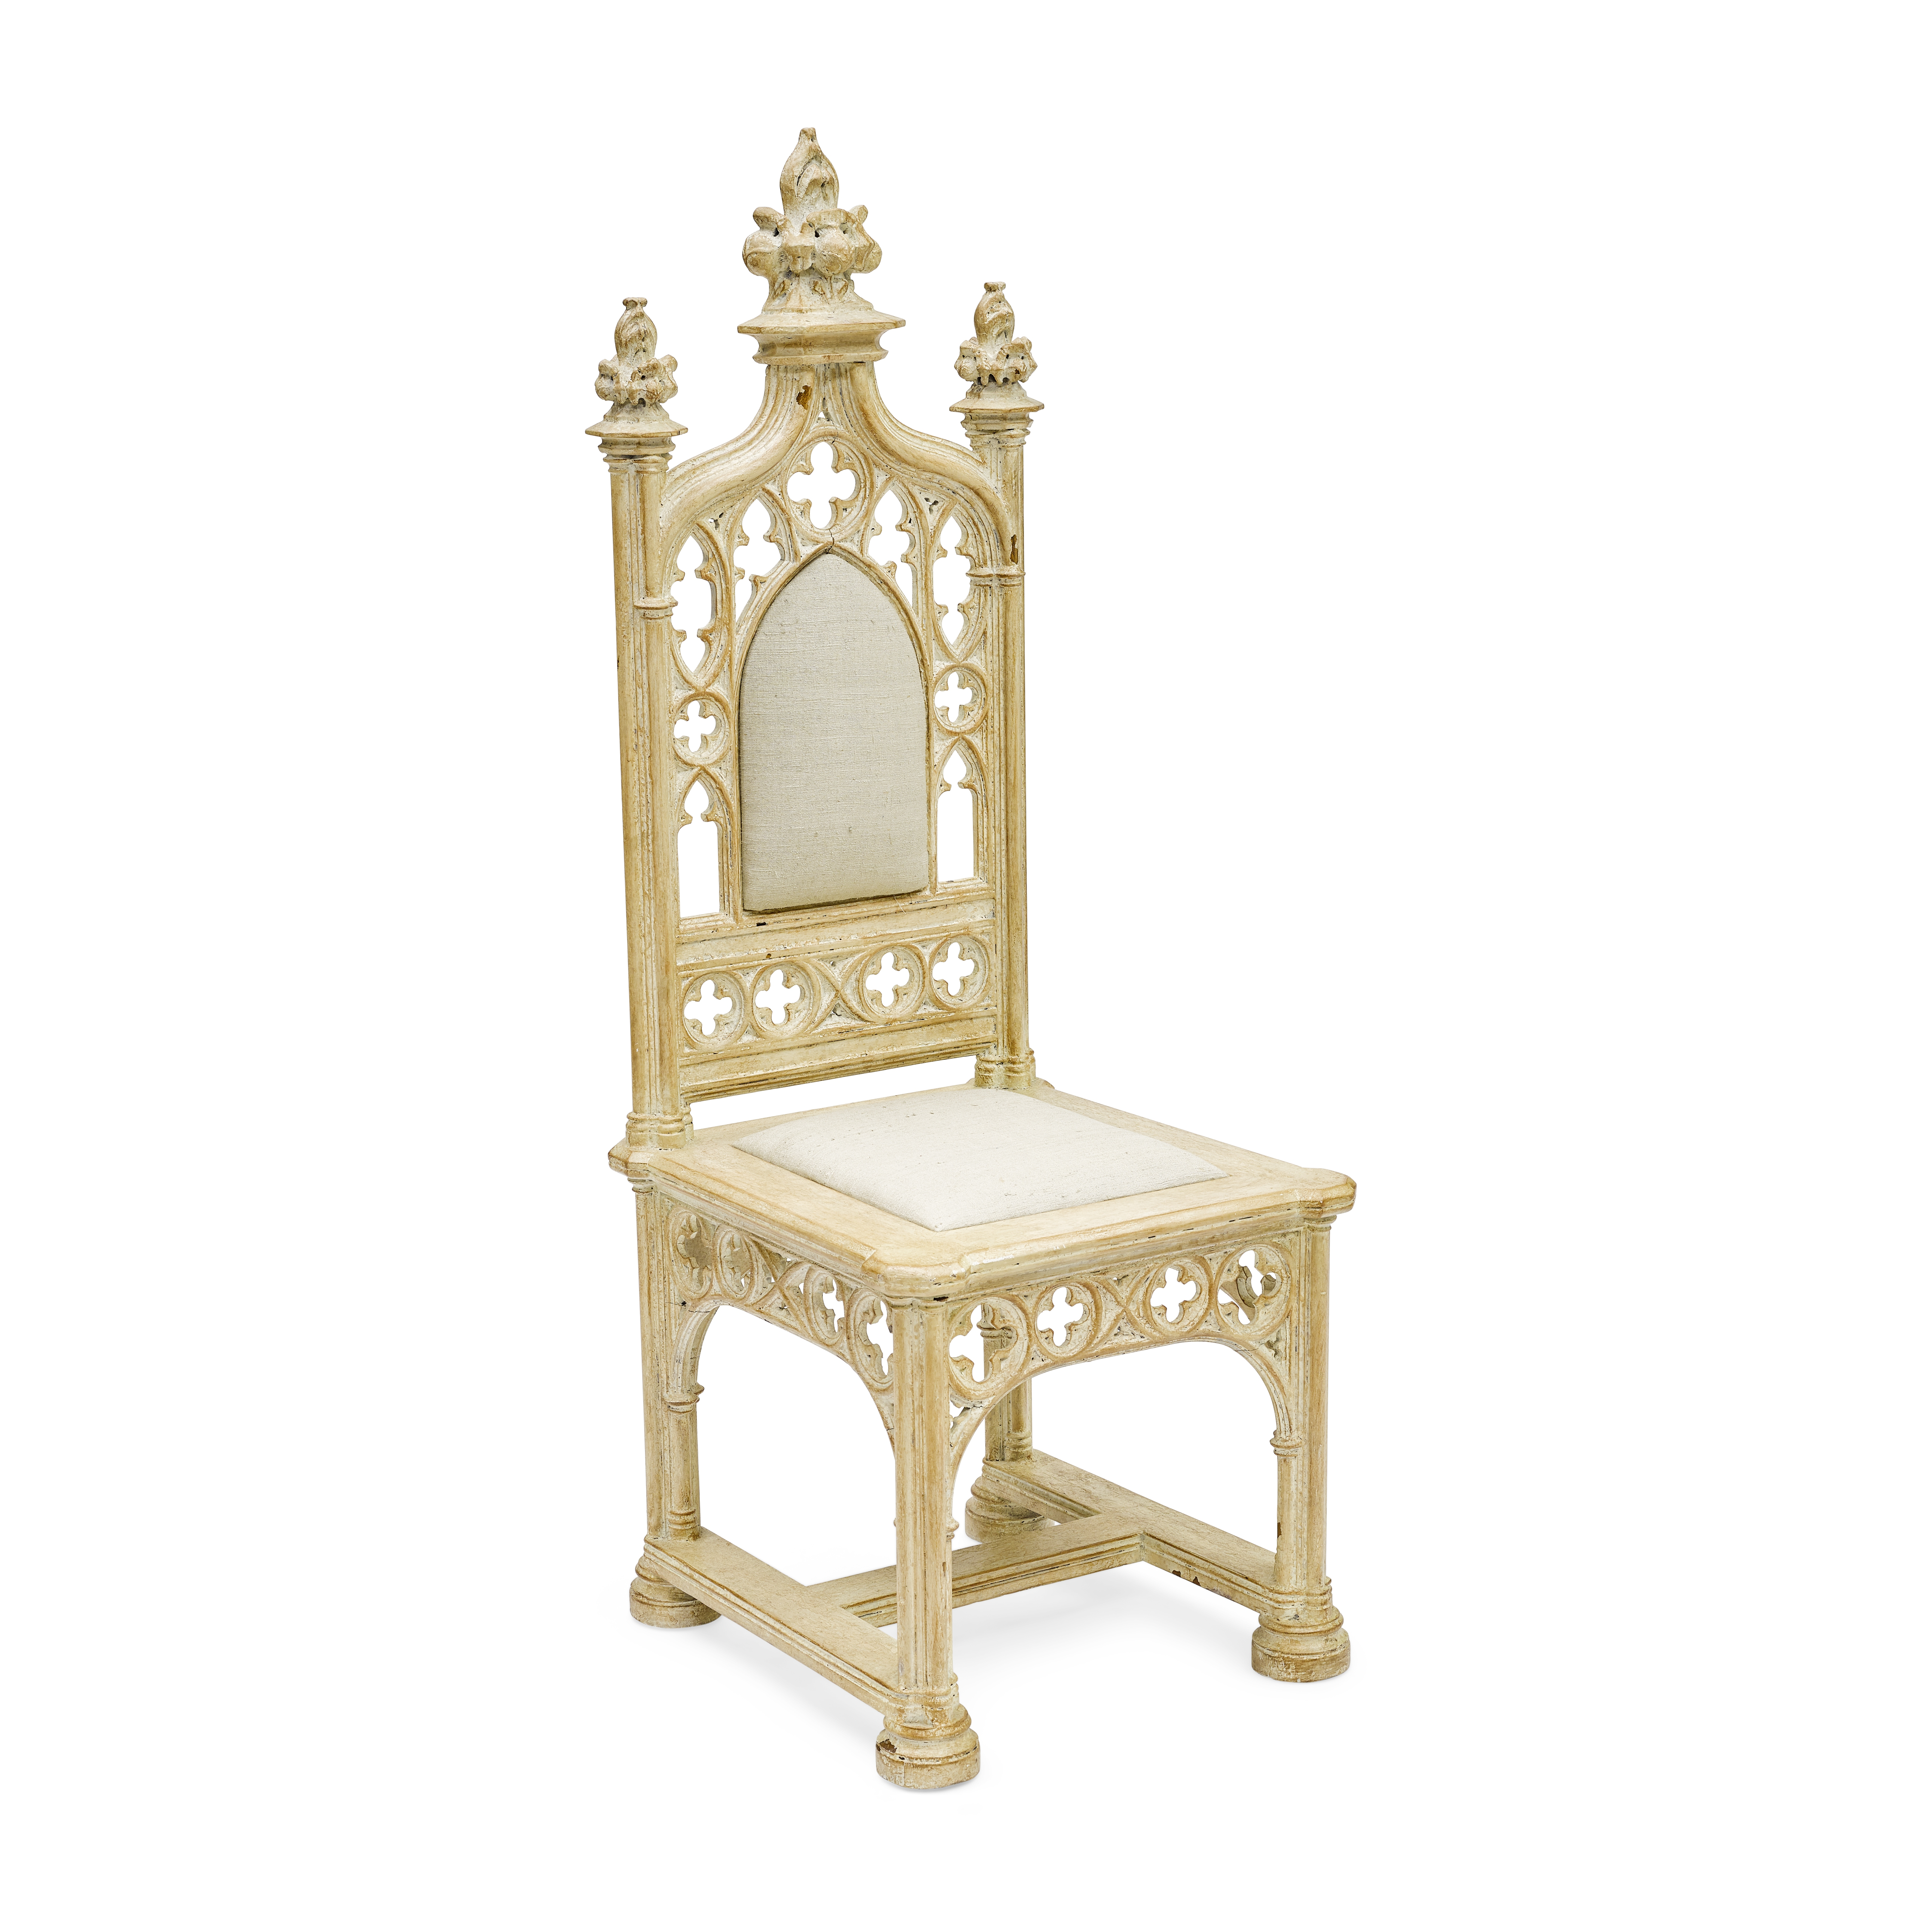 Lot 1053 - A Gone With the Wind chair from Scarlett's Atlanta mansion